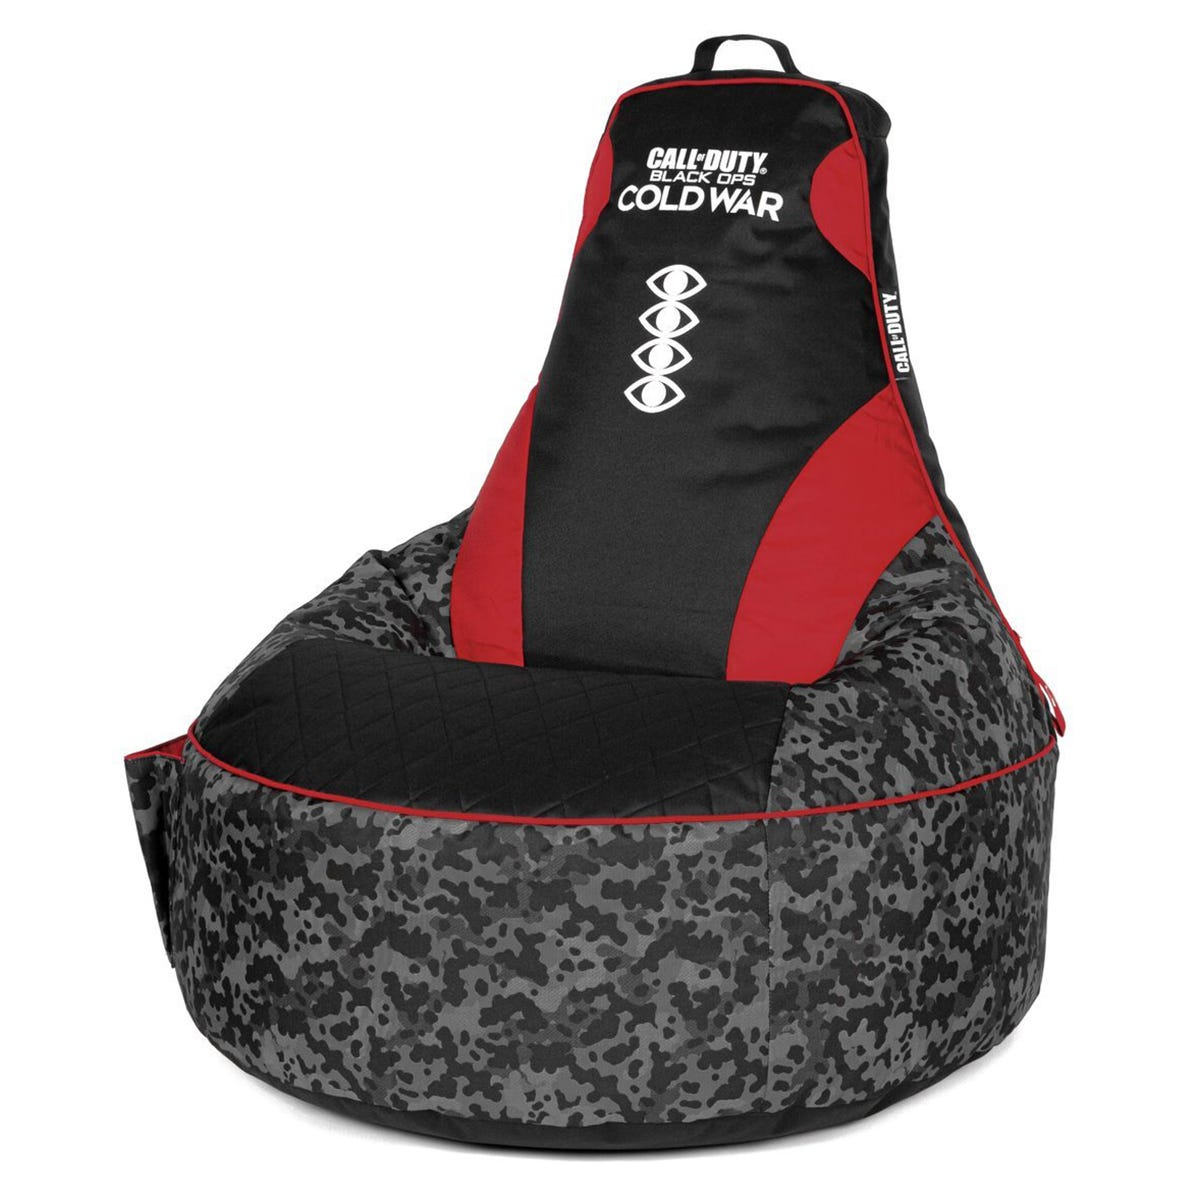 Province 5 Call of Duty Black Ops Big Chill Gaming Bean Bag Chair